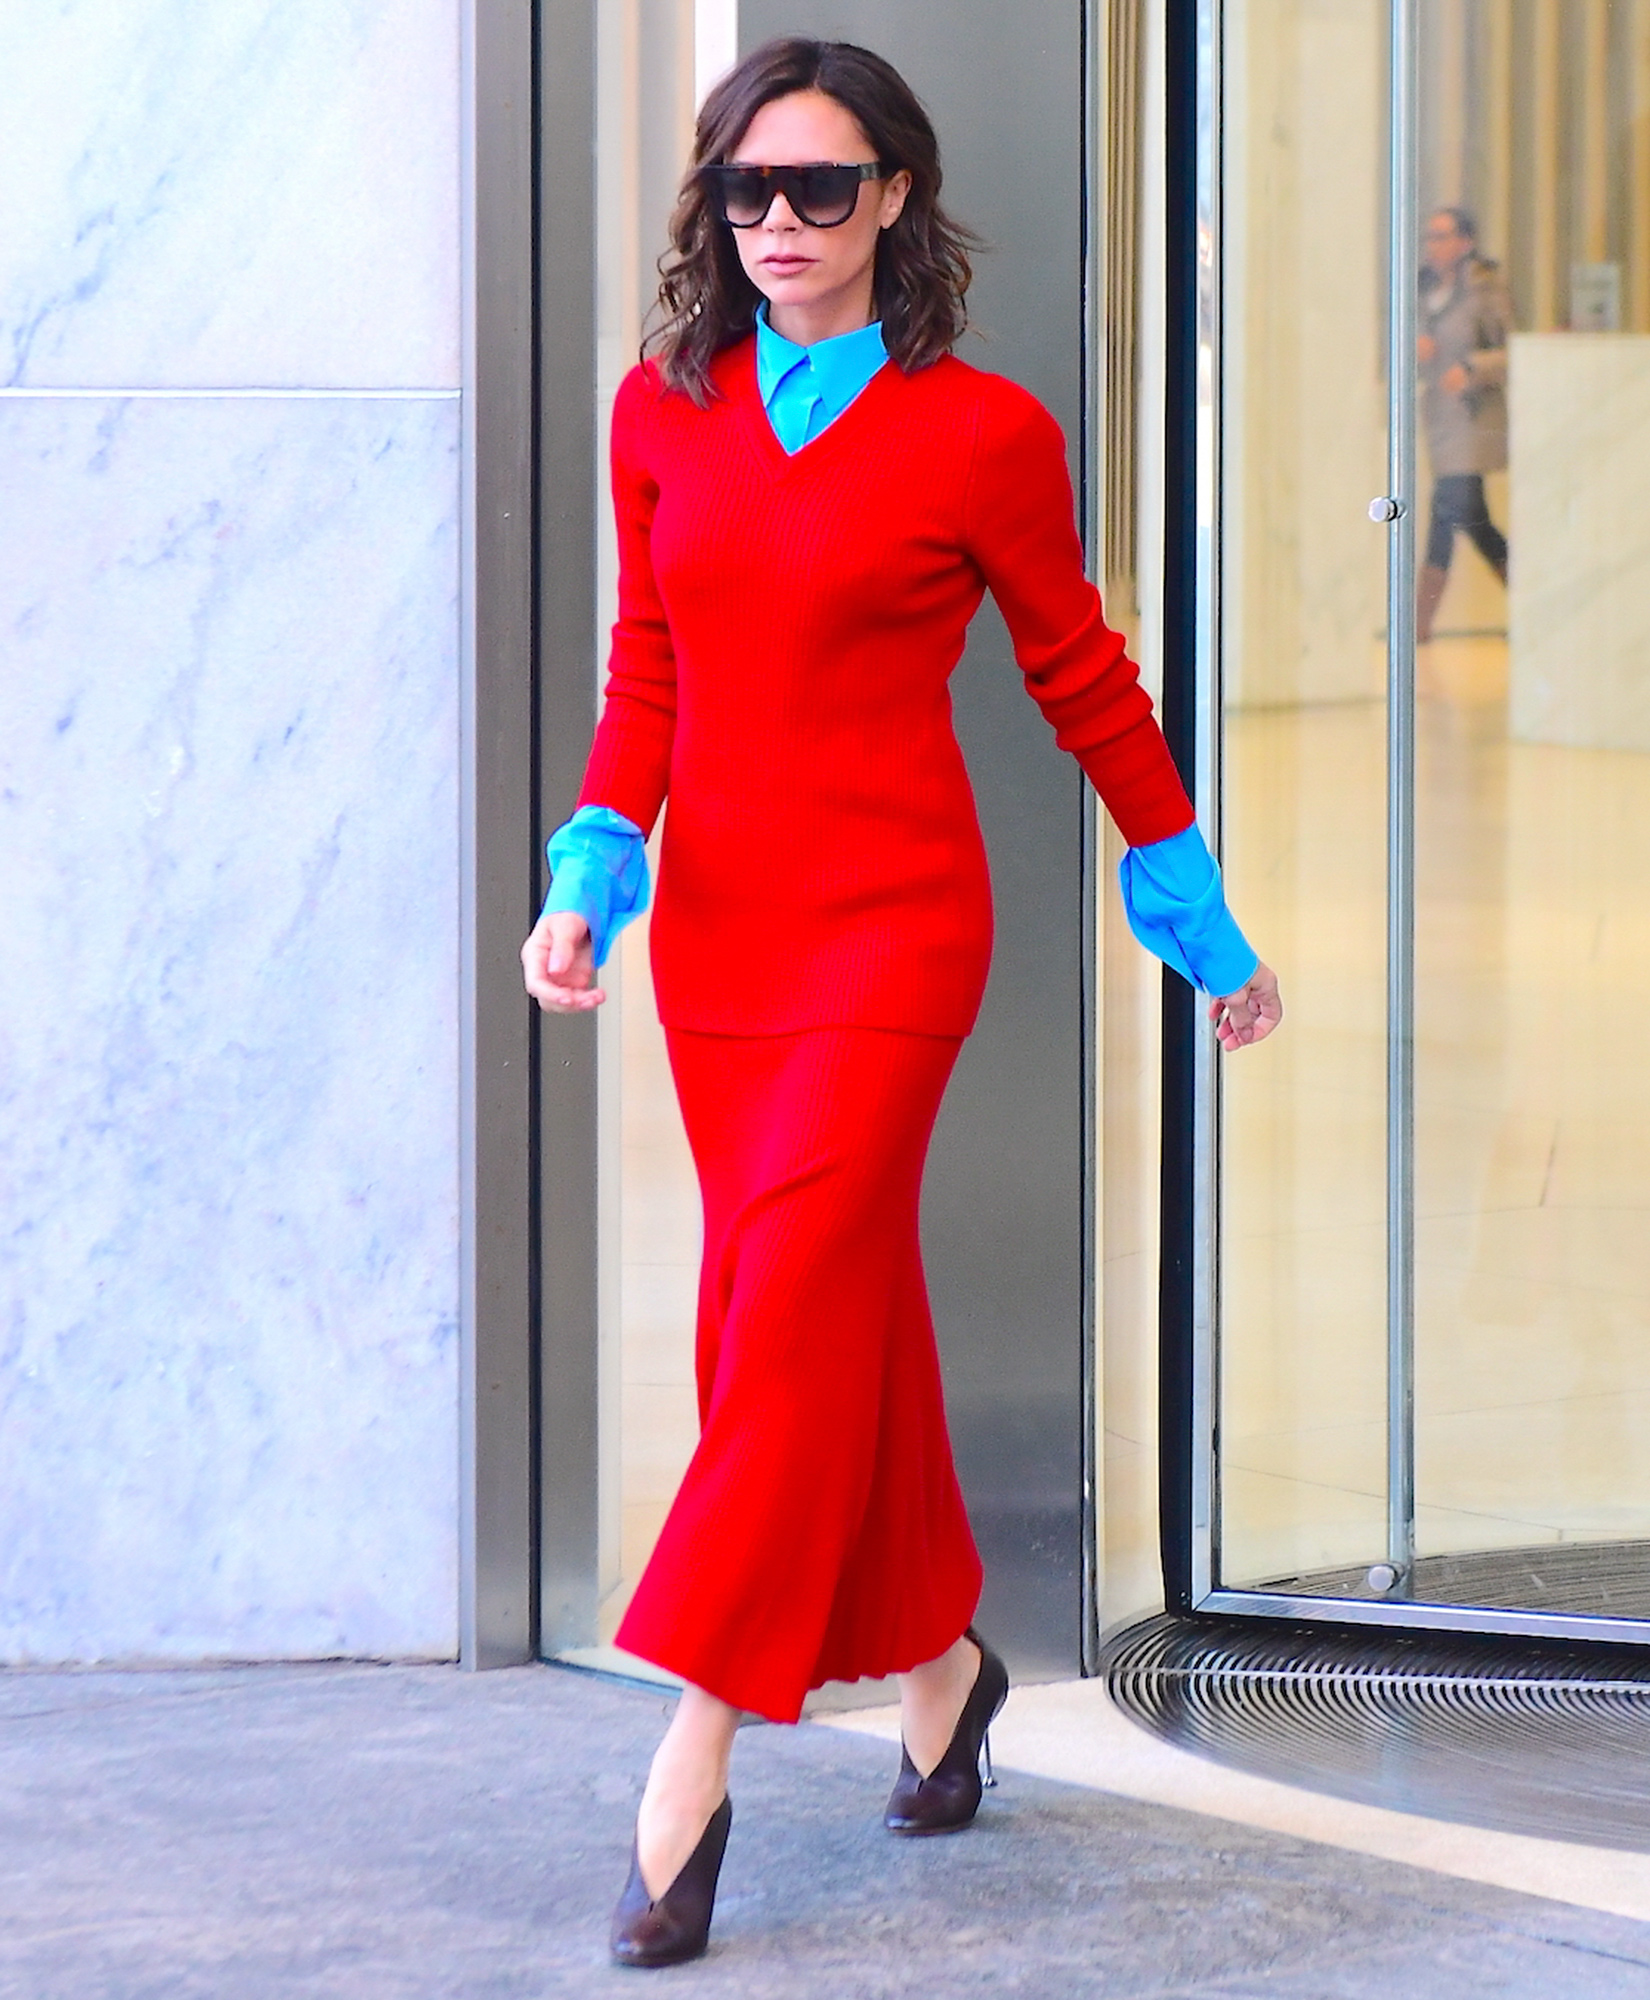 Victoria Beckham Emerges in NYC Wearing Fiery Red Outfit Amid David Beckham's Email Leak Scandal